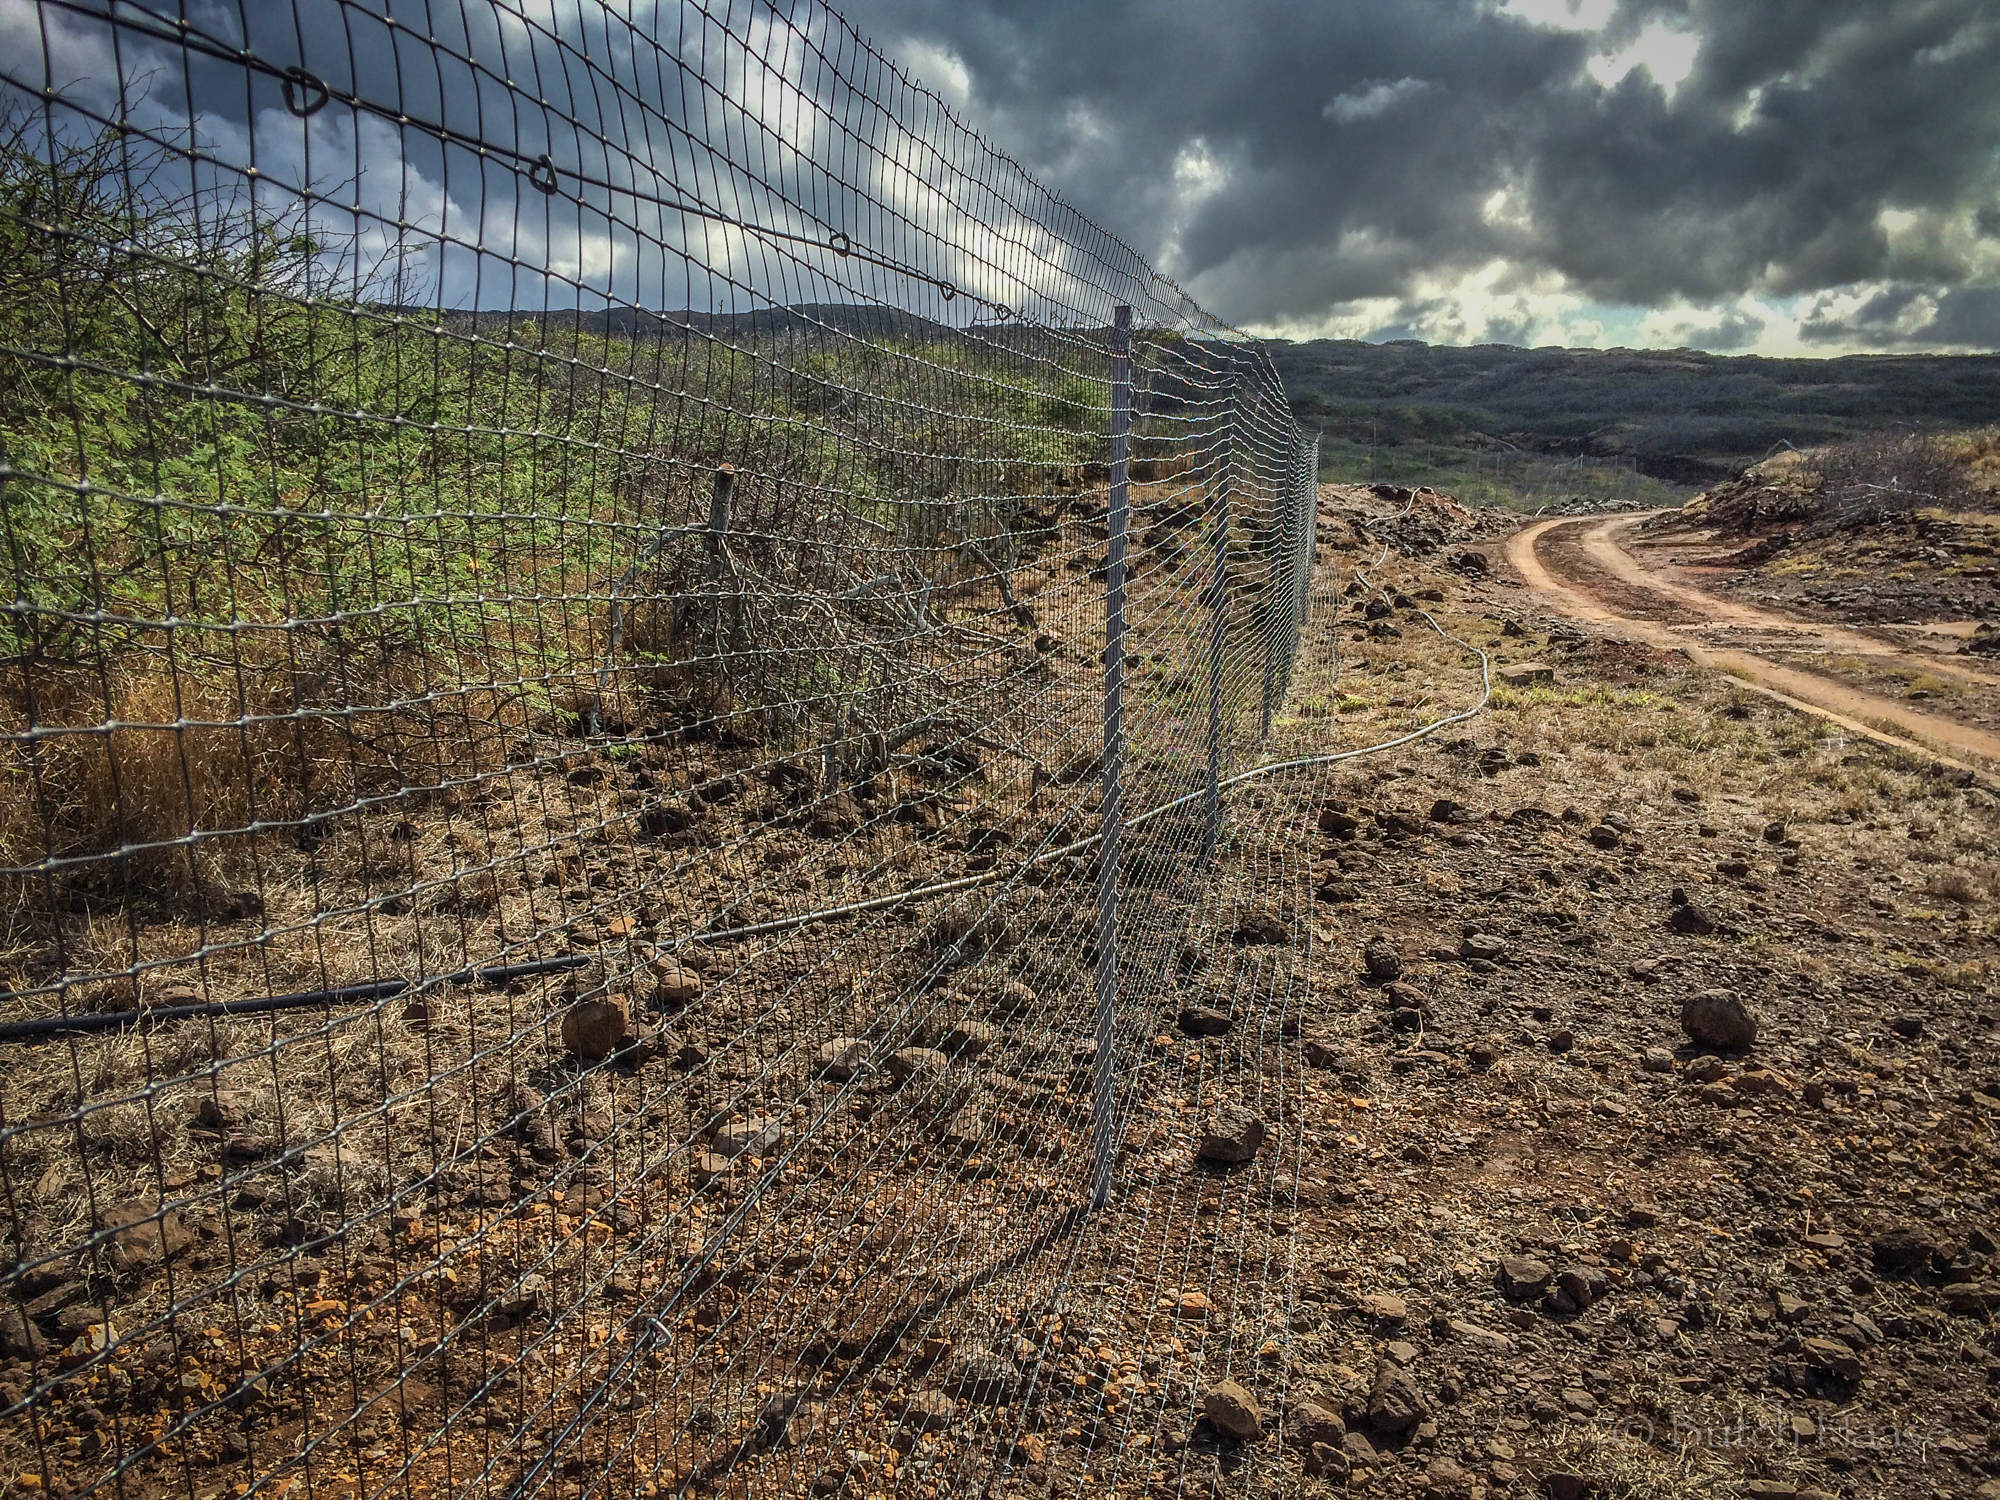 Butch Hawaii Deer Fence Photo.jpg